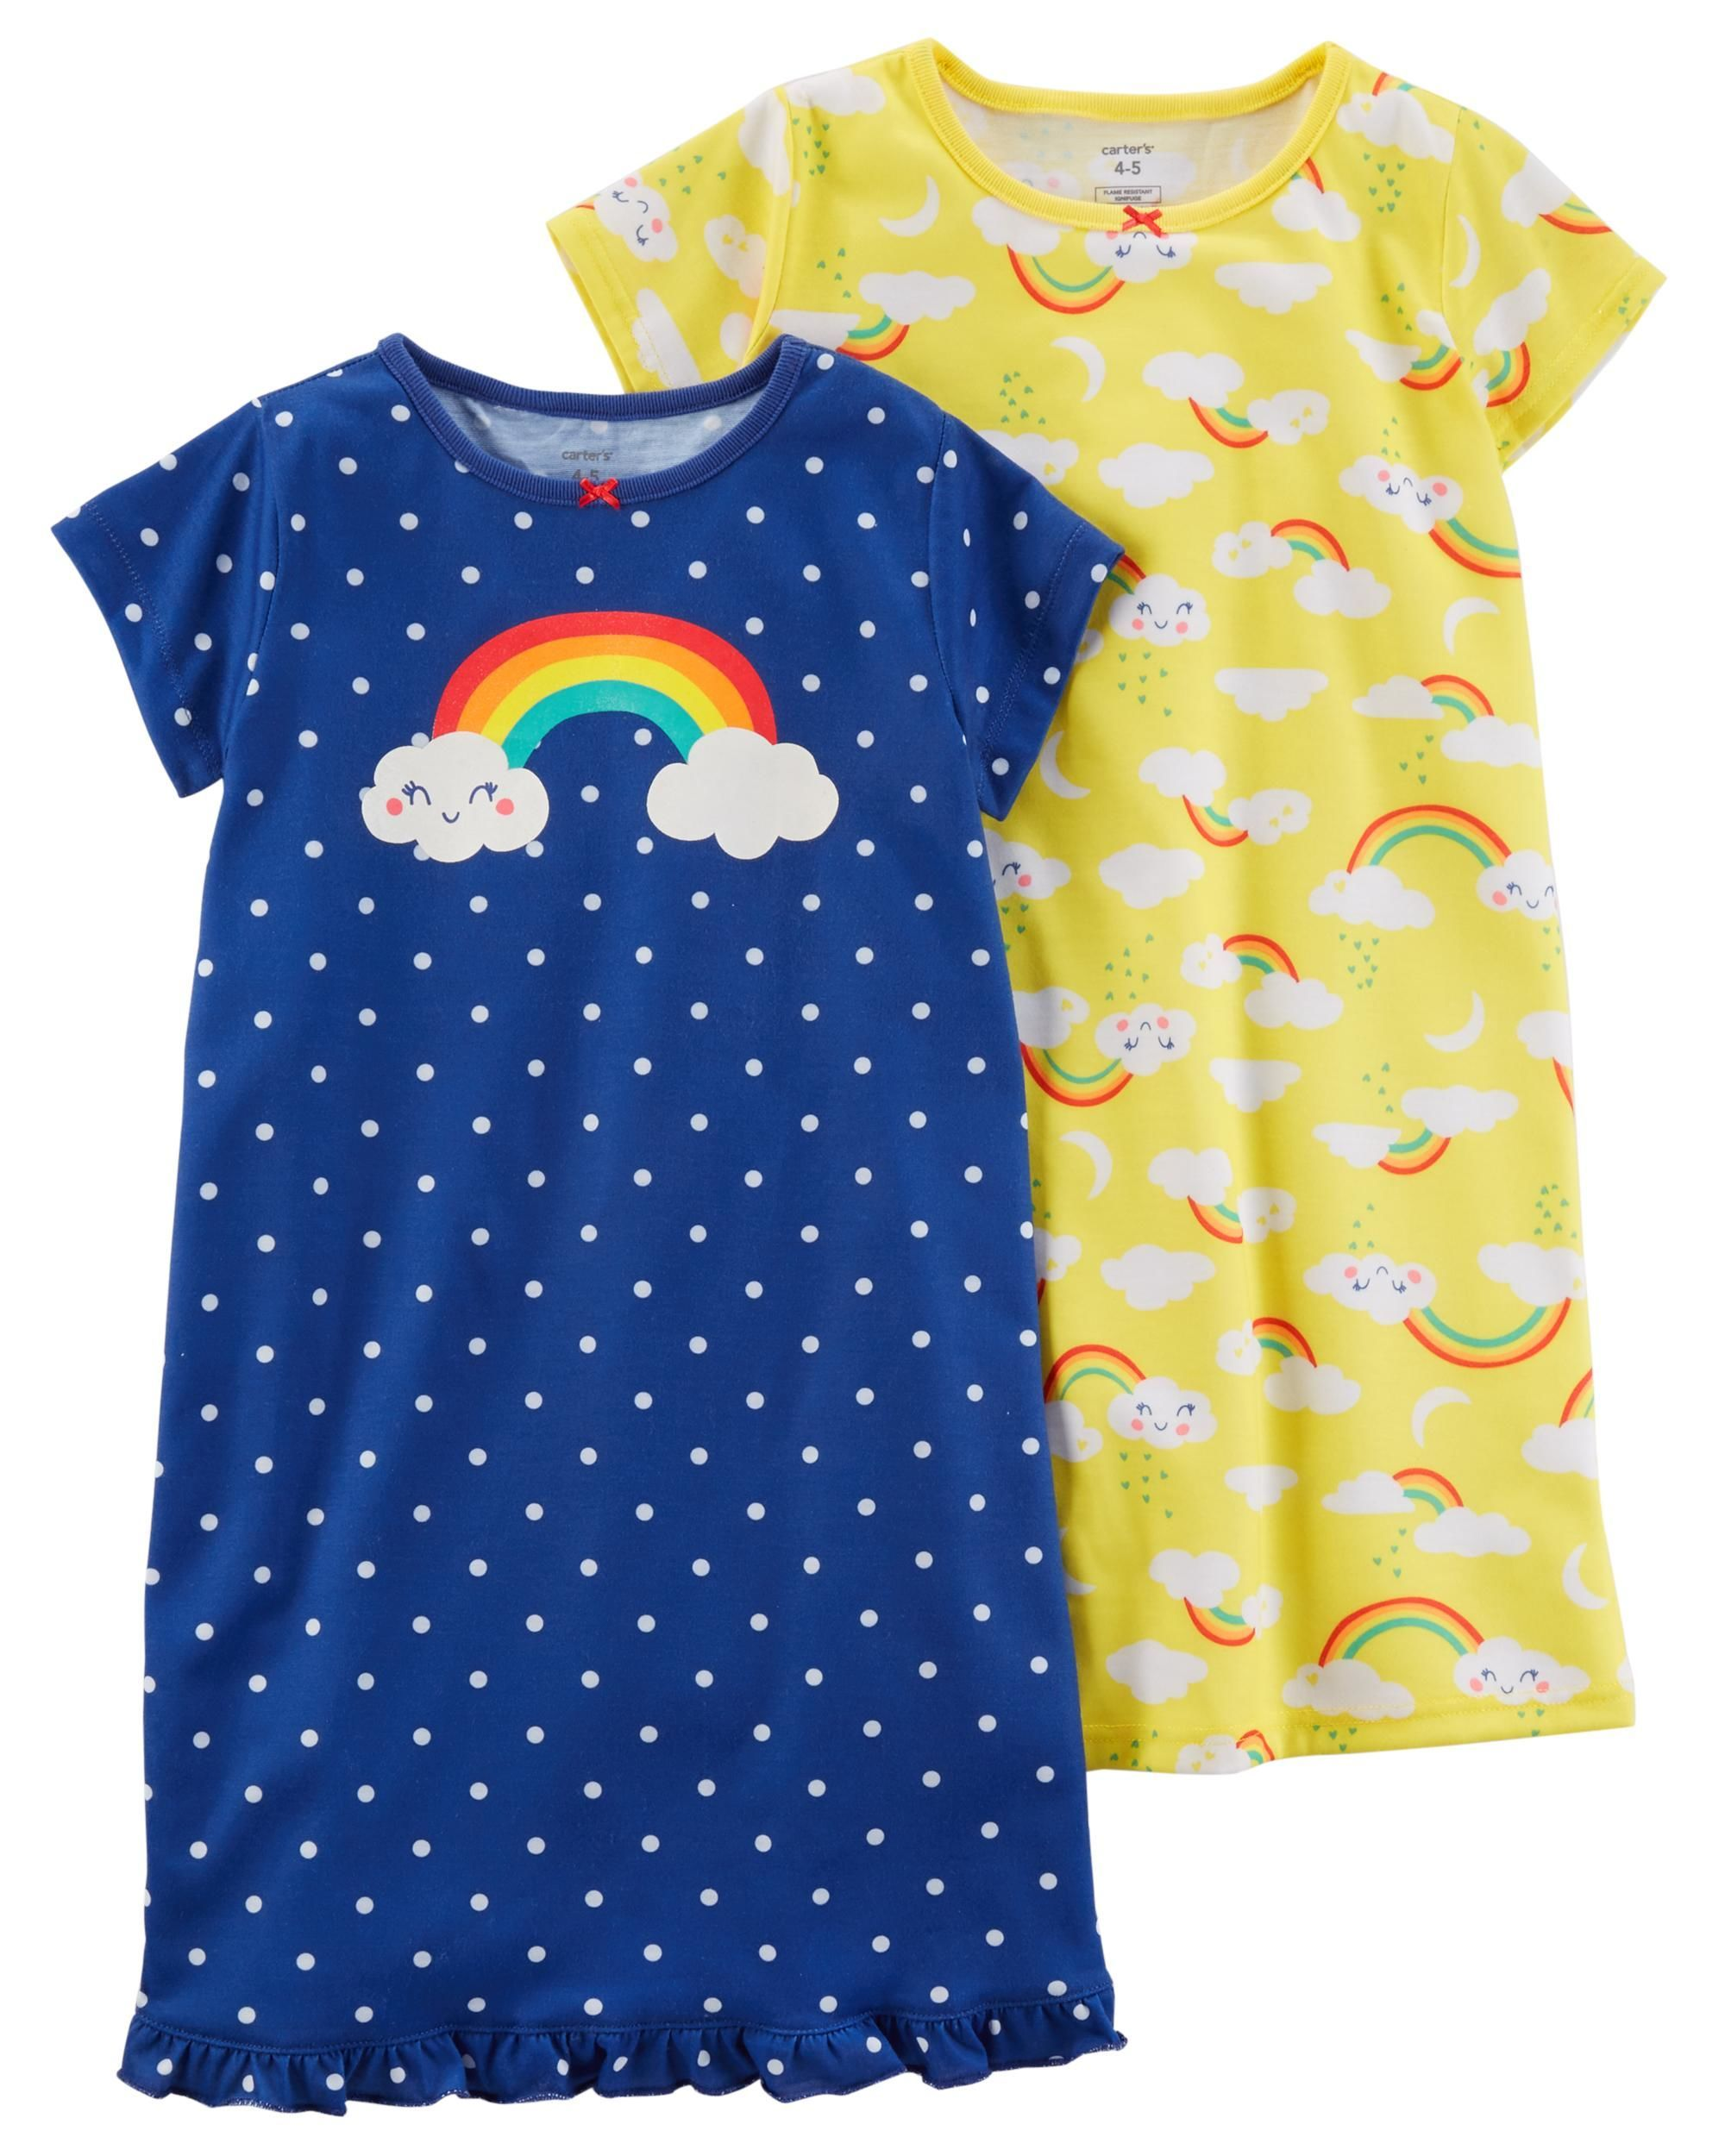 a1b8c7ed0 2-Pack Nightgowns